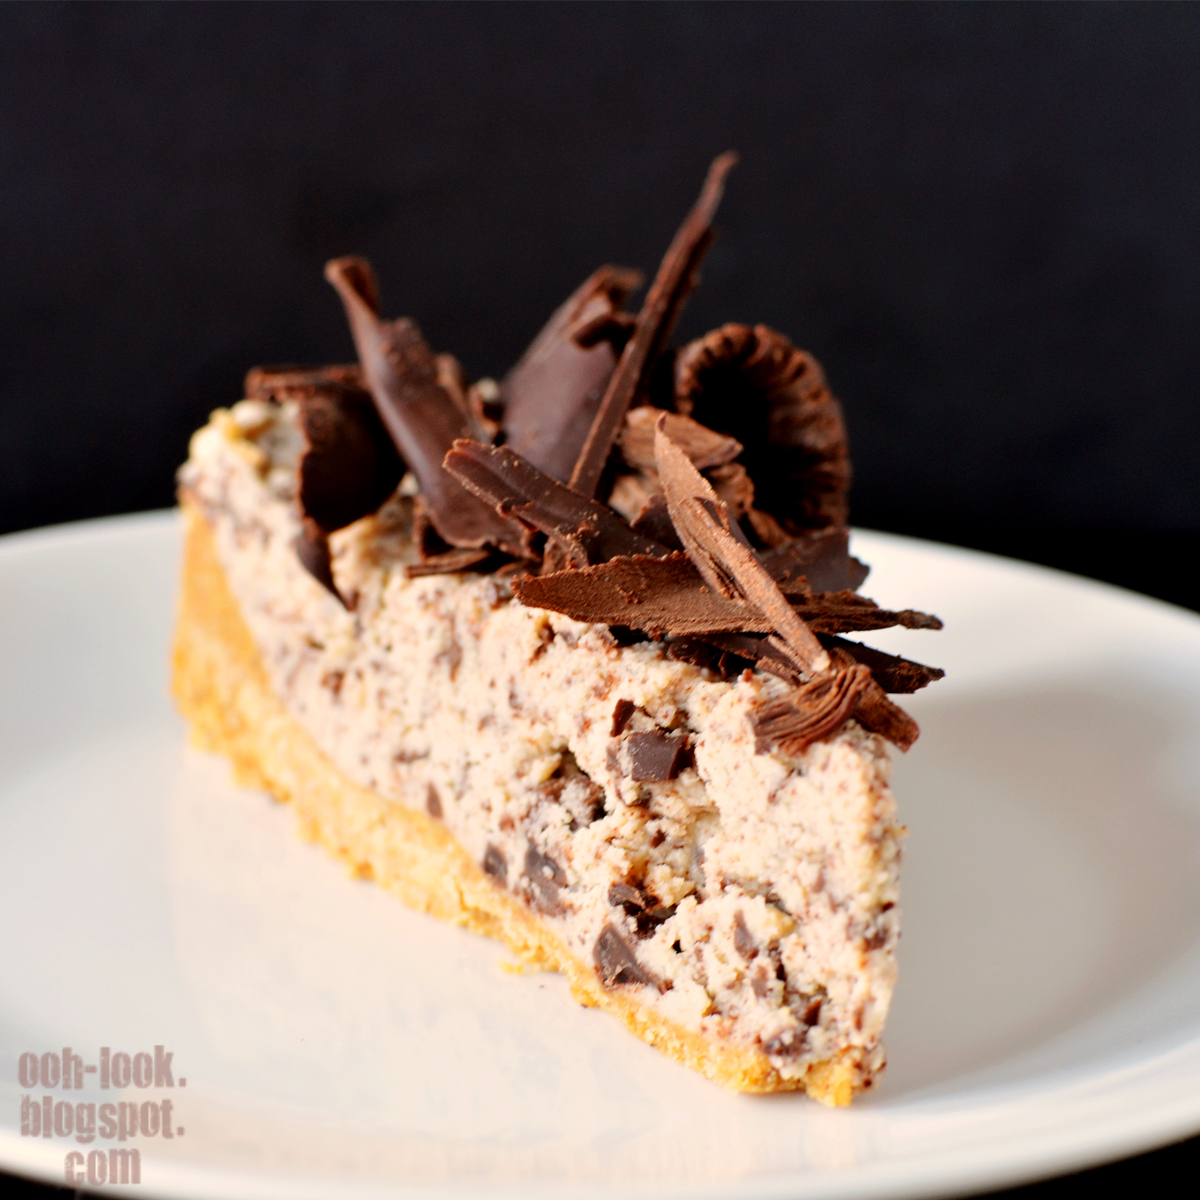 Even though i used low fat ricotta this is still a rich cheesecake